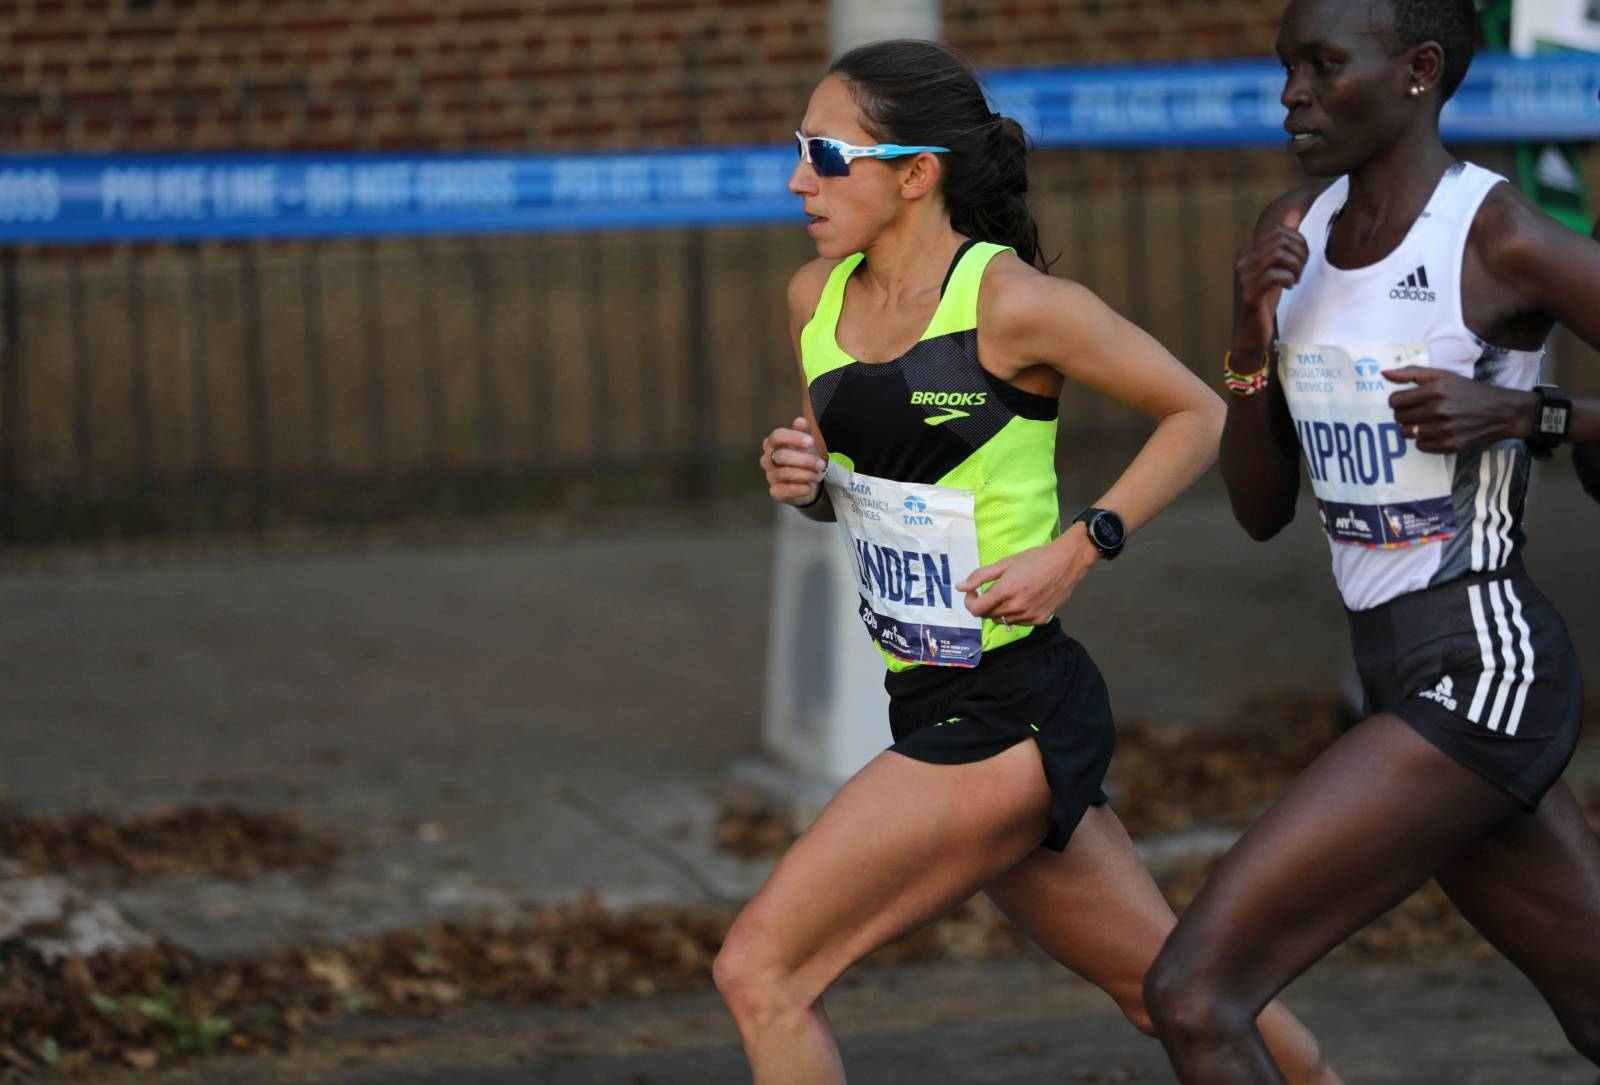 FILE PHOTO: Running: New York City Marathon